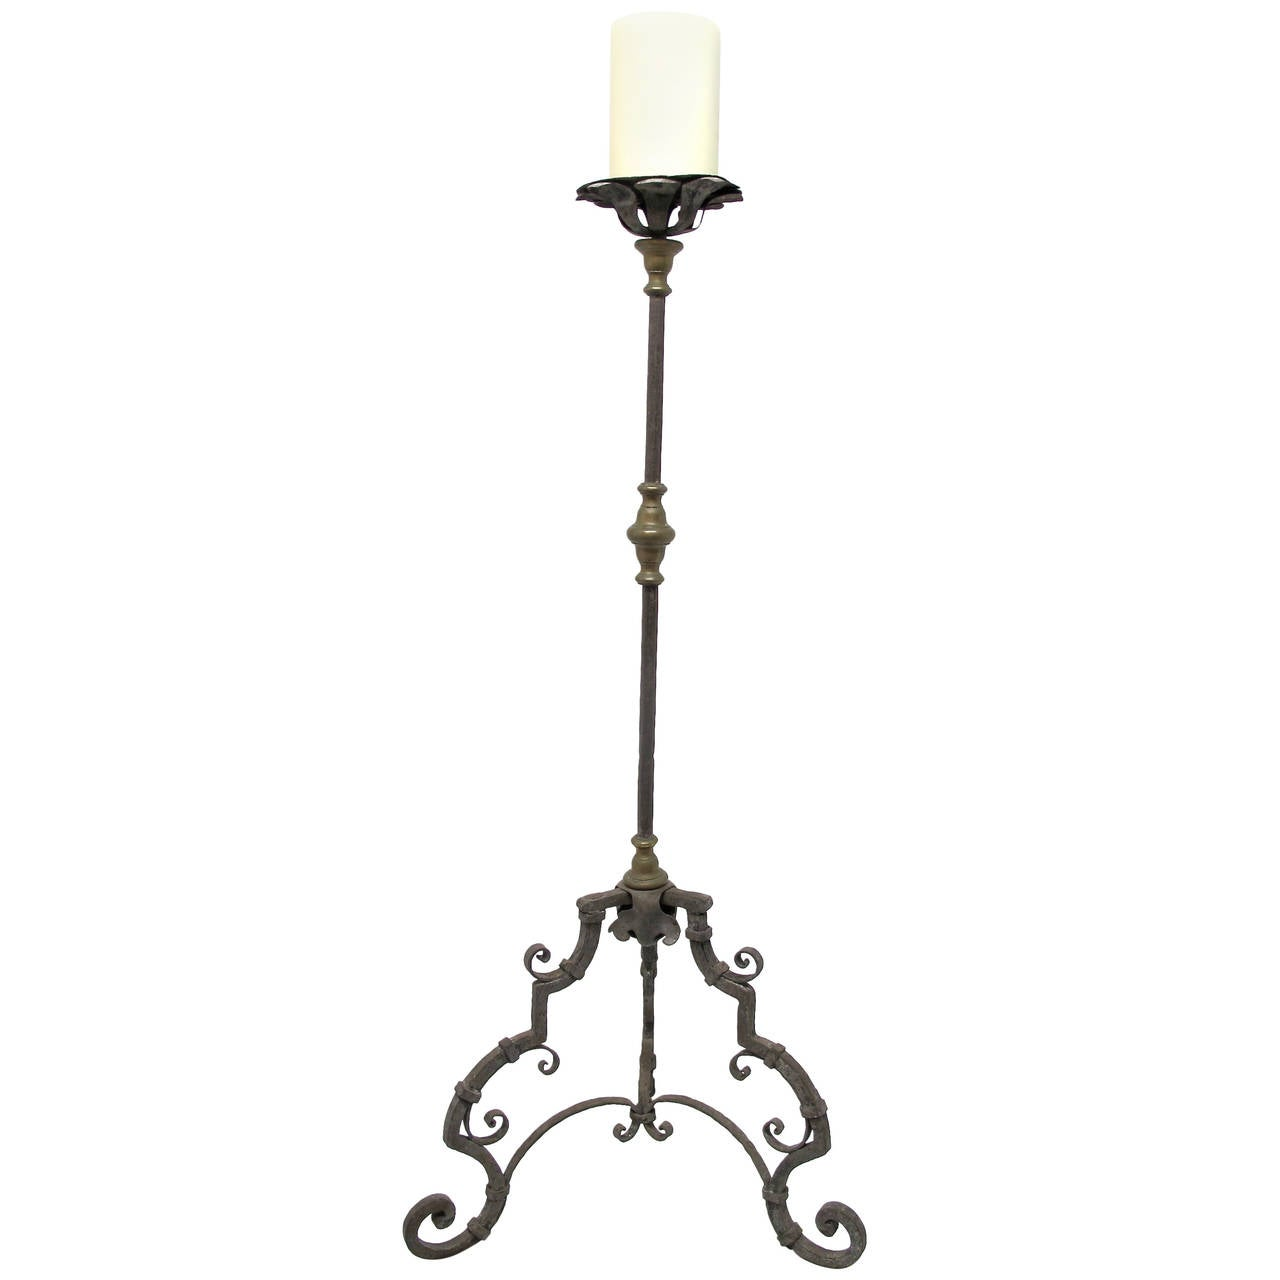 Iron Candle Stand Designs : Th century italian wrought iron candle stand for sale at